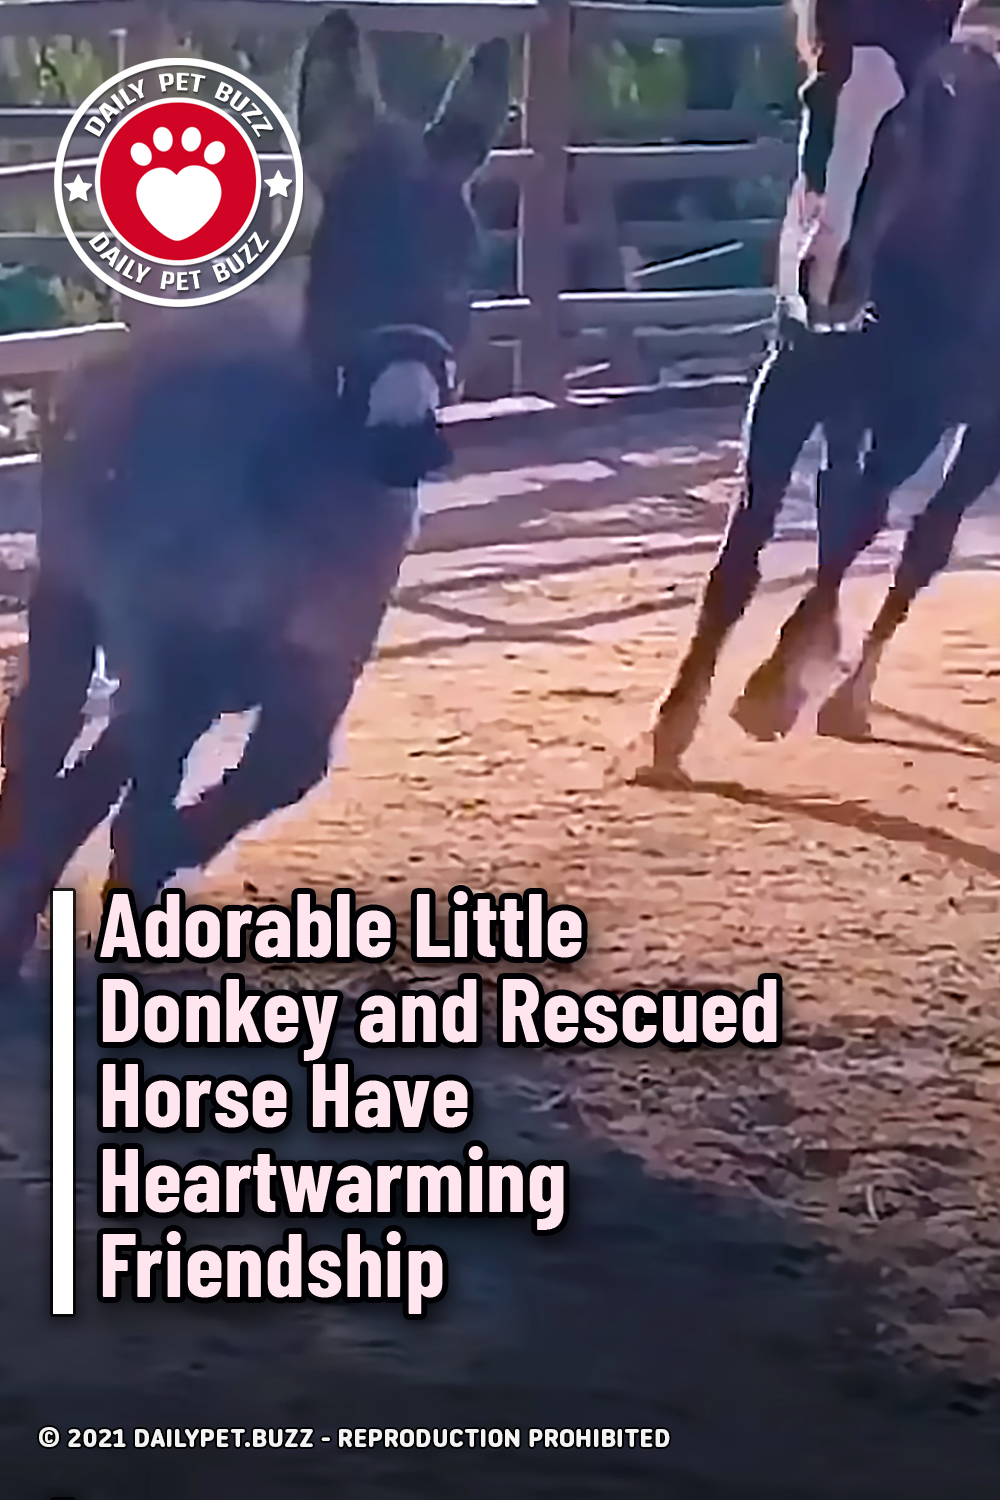 Adorable Little Donkey and Rescued Horse Have Heartwarming Friendship